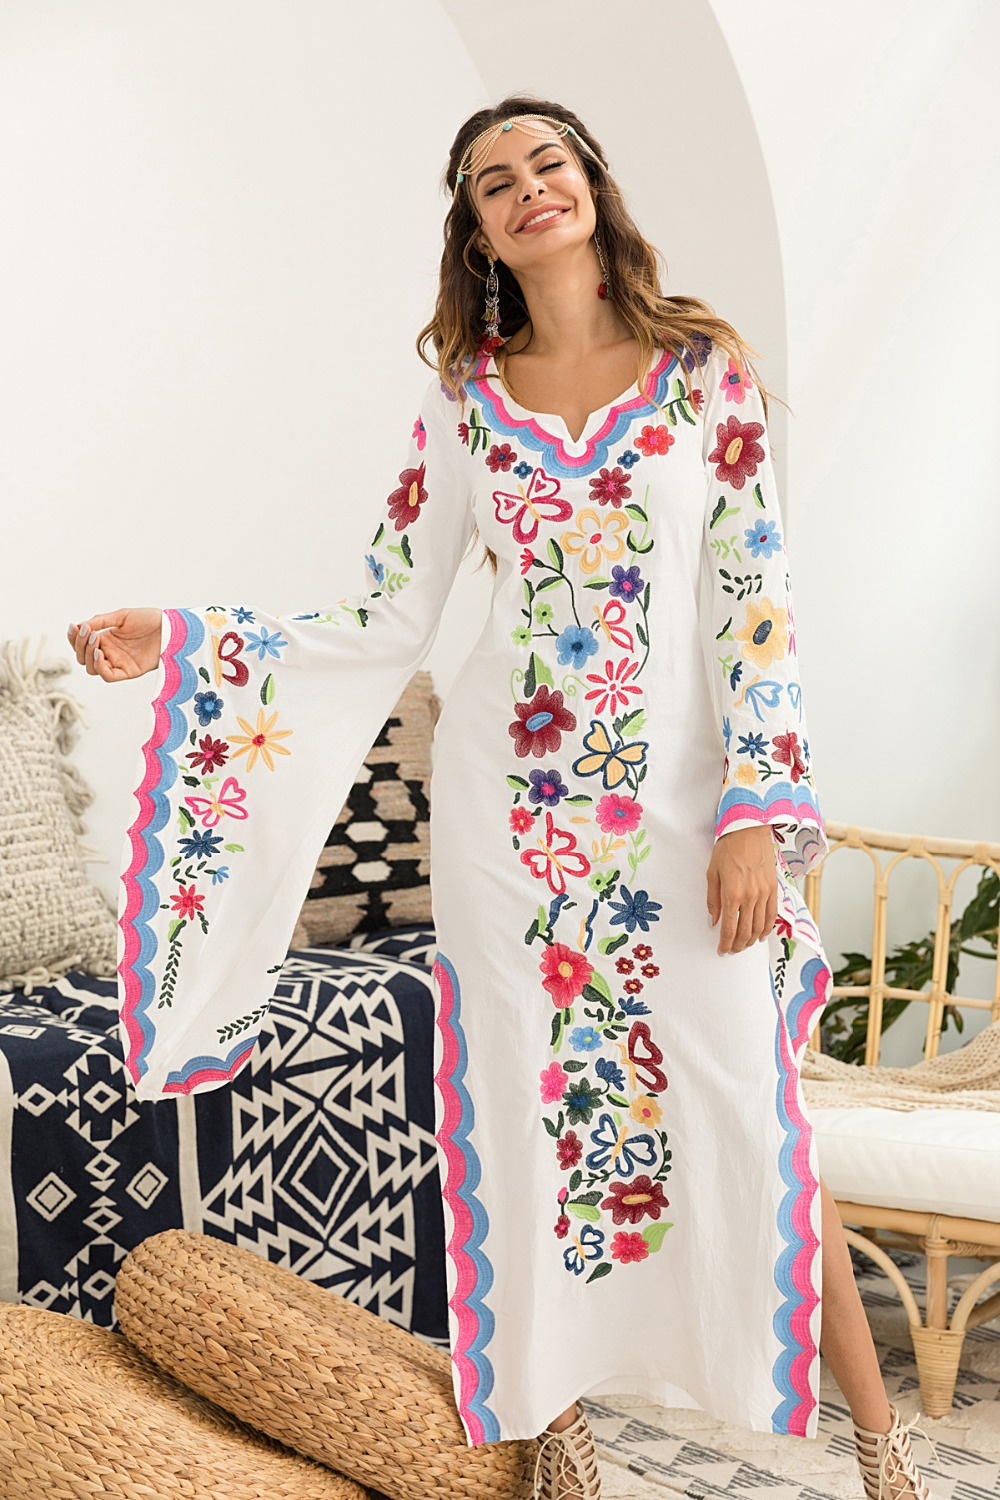 New Vintage Flared Long Sleeve Bohemian Multi Flower Embroidery Maxi Dress Women Sexy Boho Loose Festival